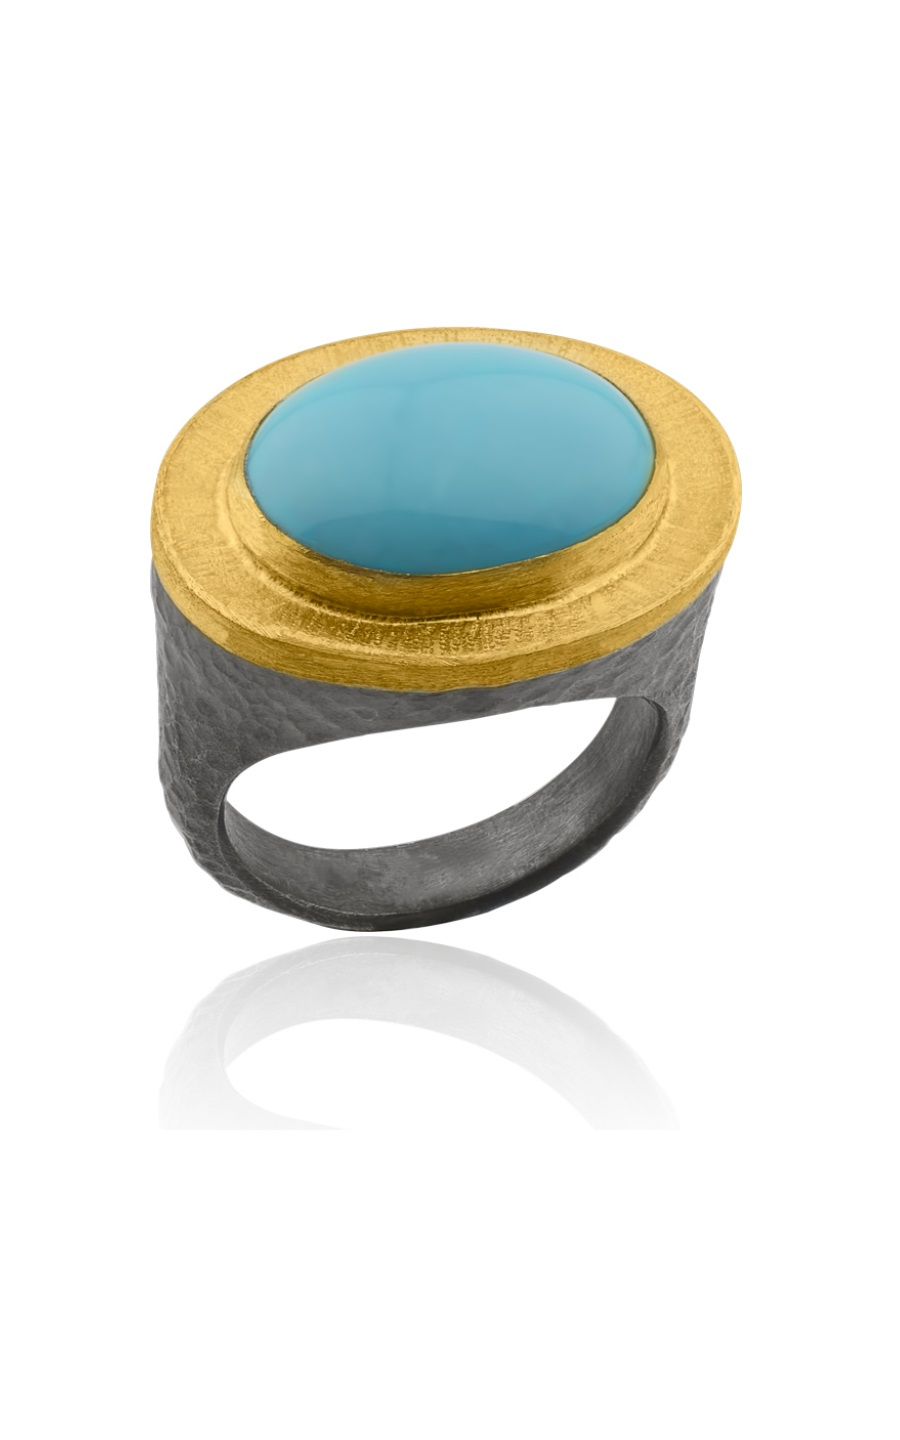 Lika Behar Turquoise Pompeii Ring  product image